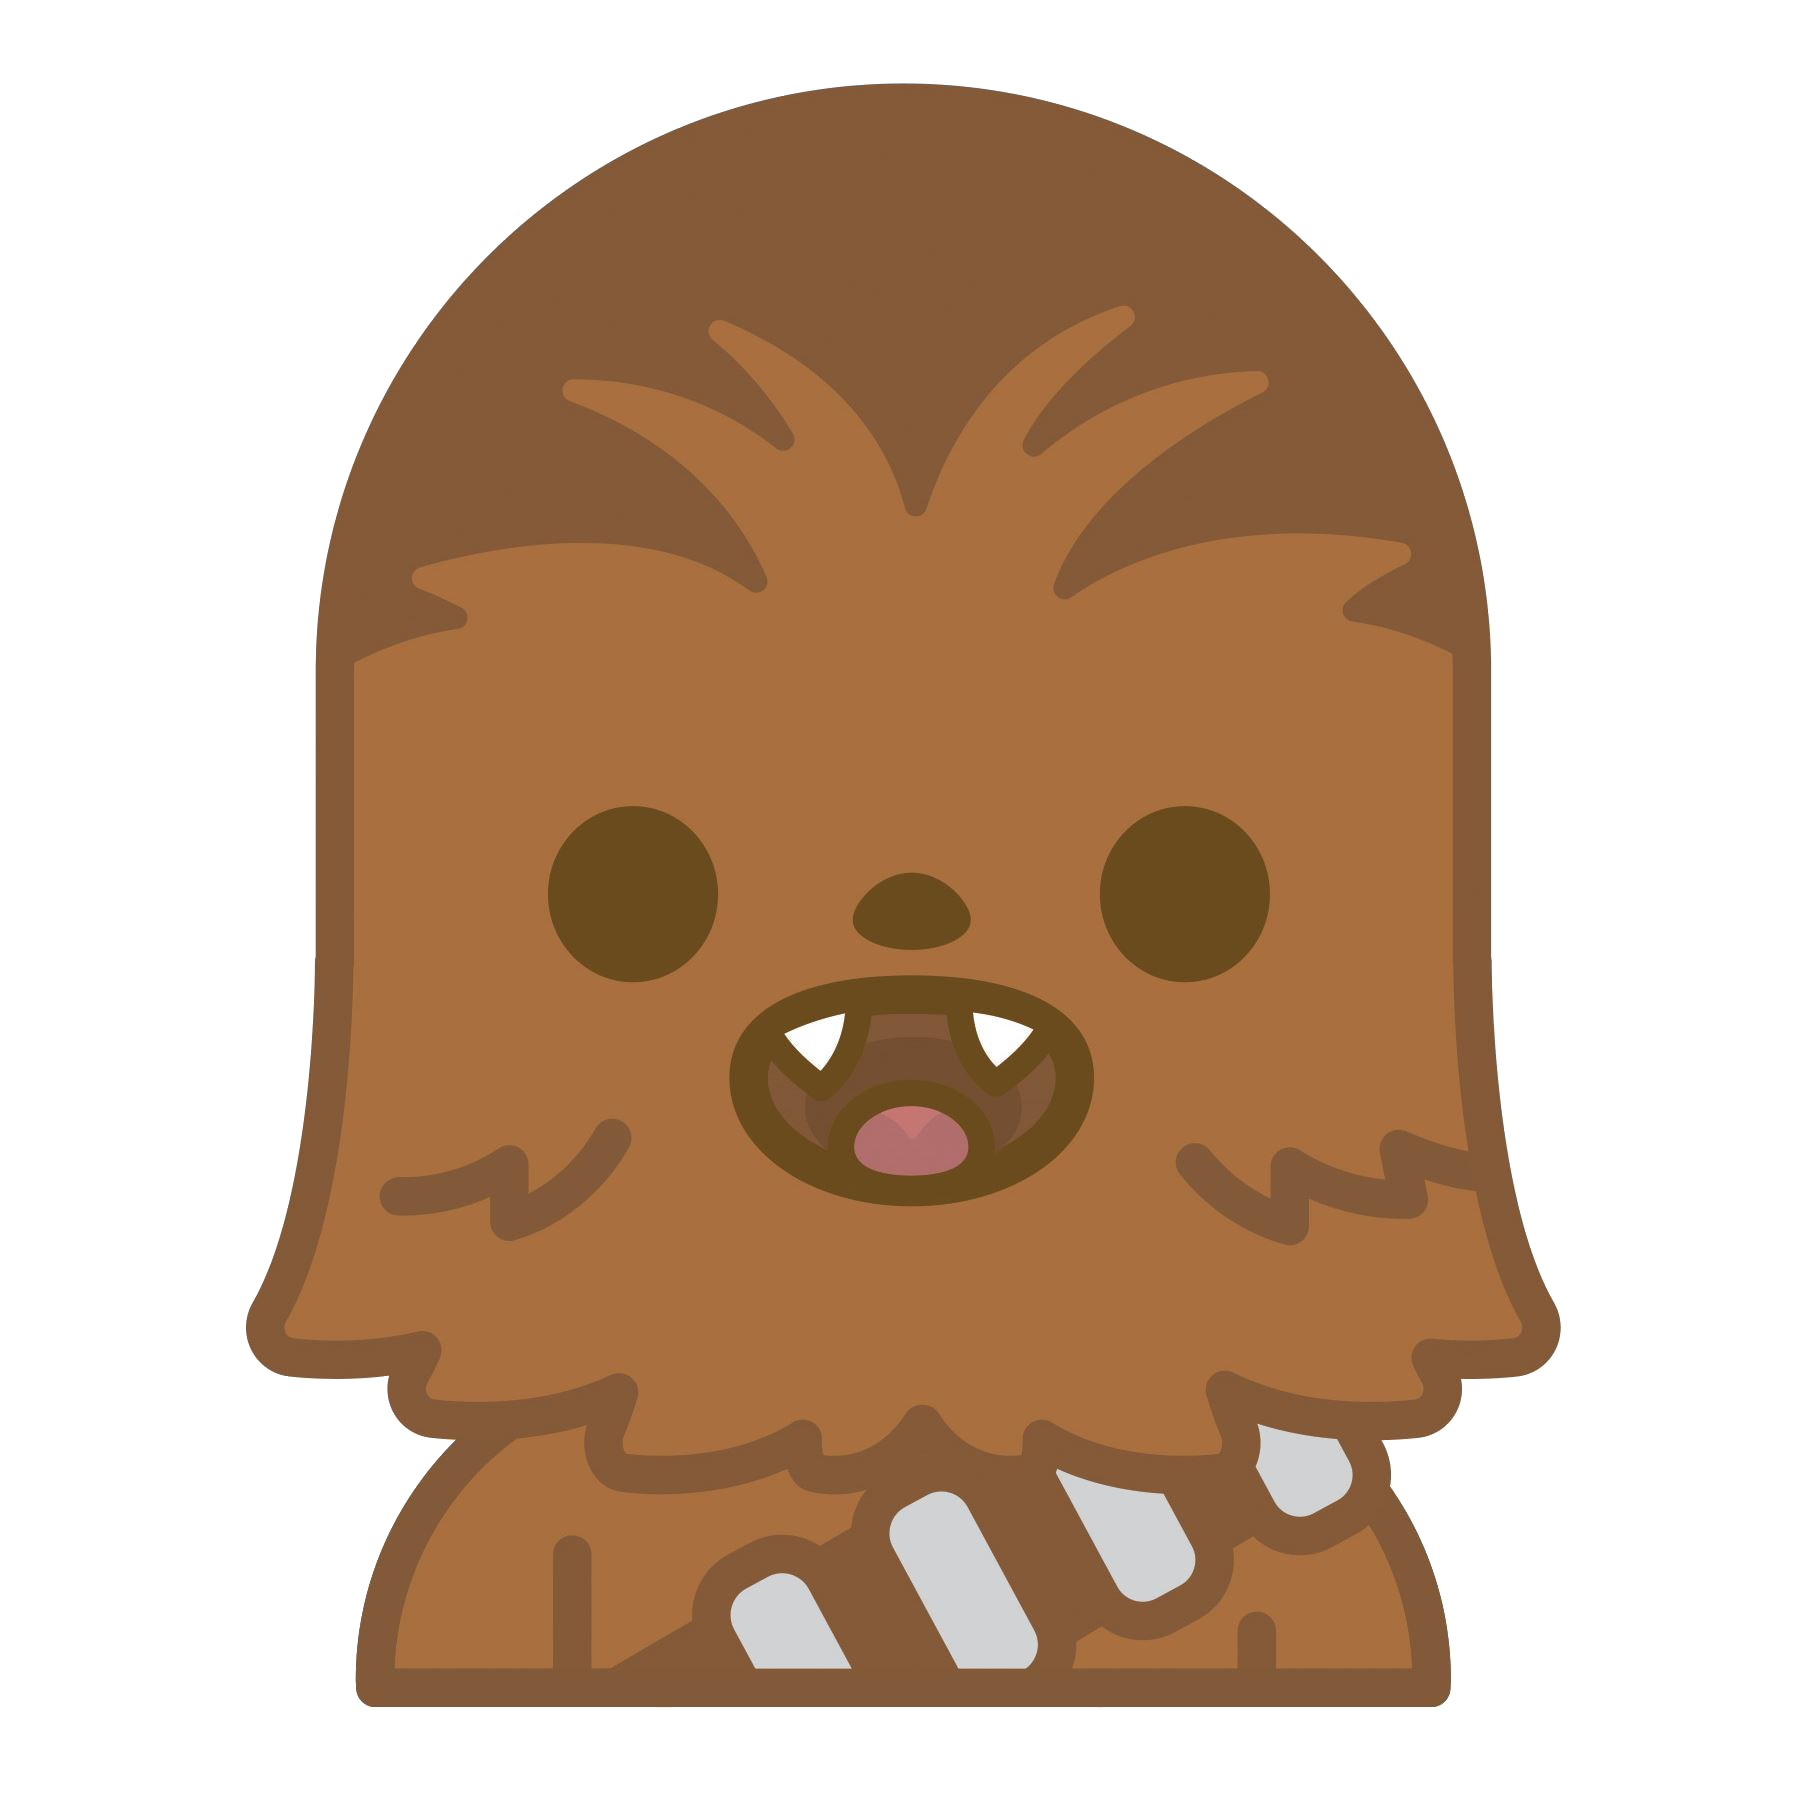 picture transparent download Chewbacca clipart. Star wars emoji .